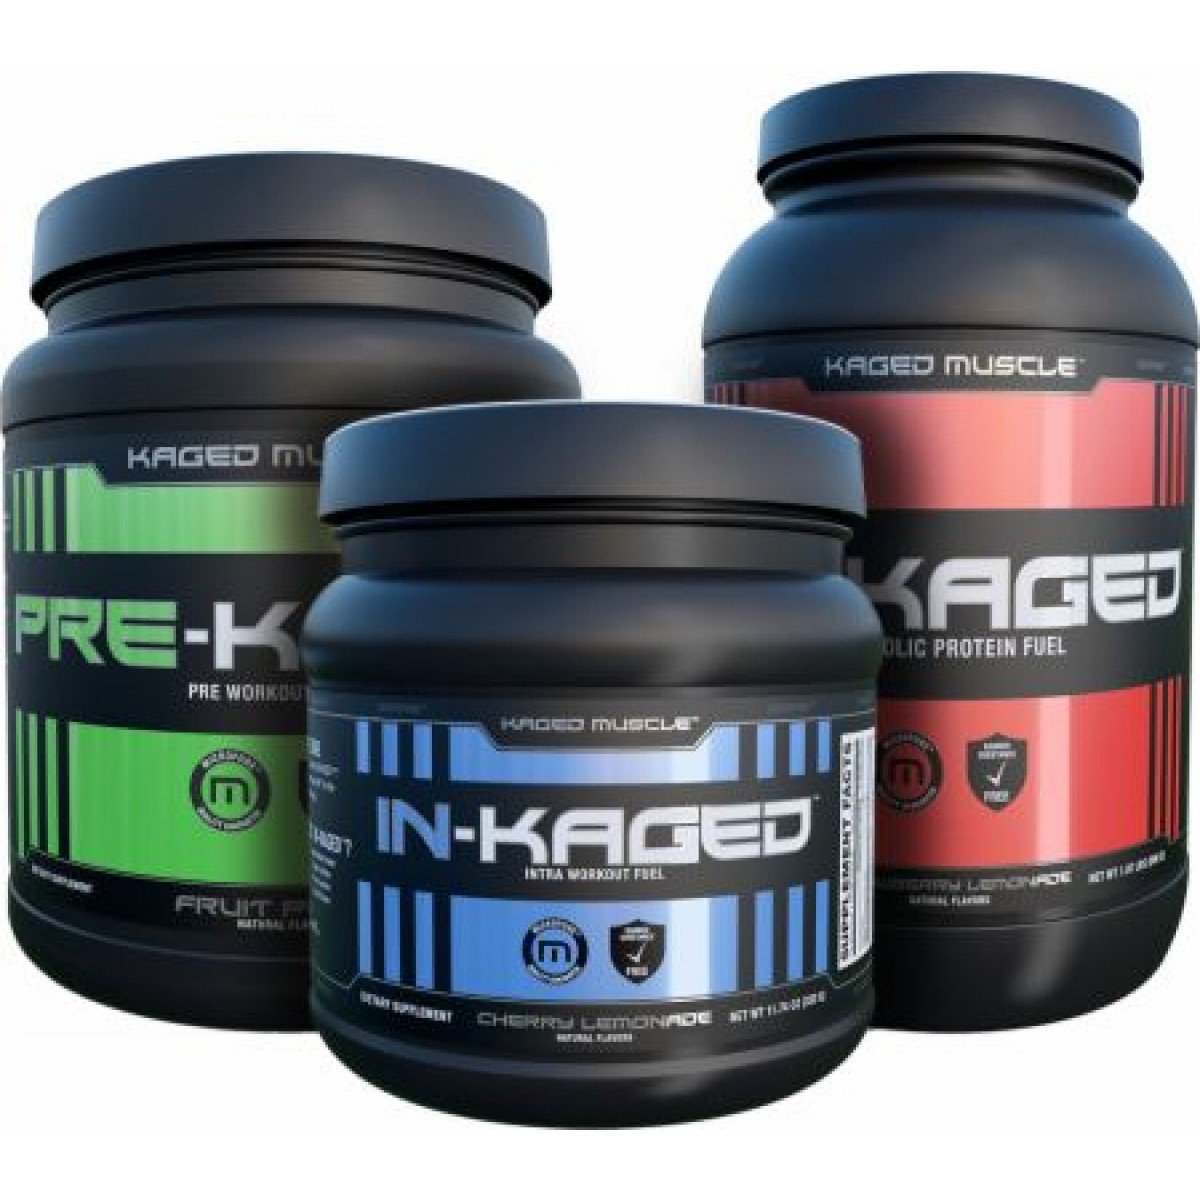 Kaged Muscle Coupon – <span>20% OFF</span> Entire Line!